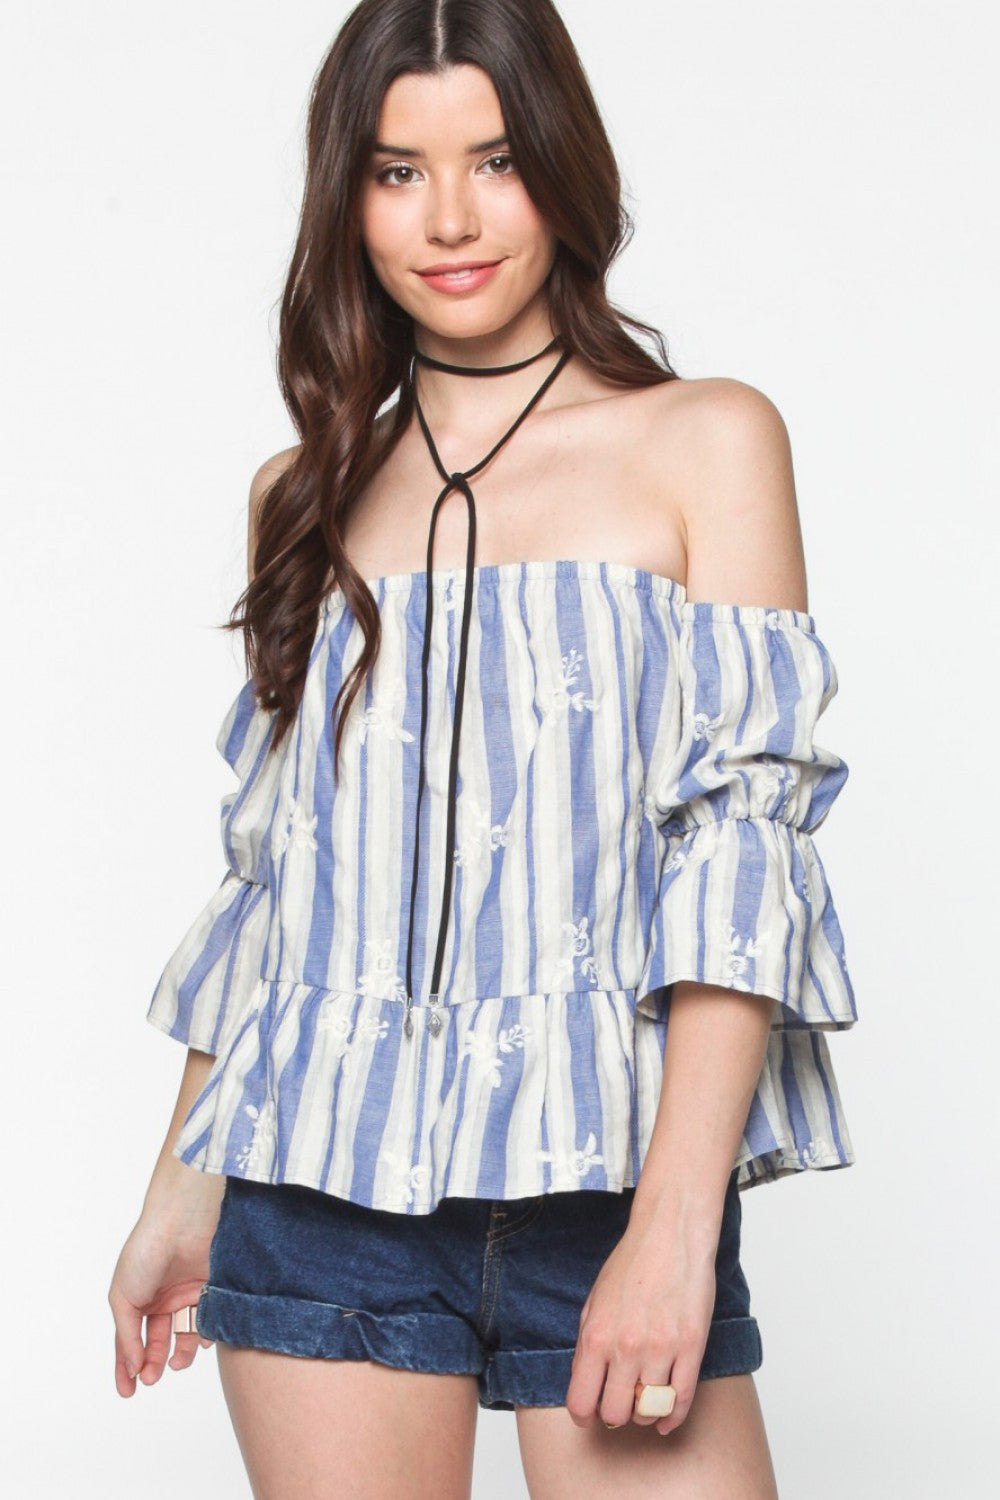 Brighter days top